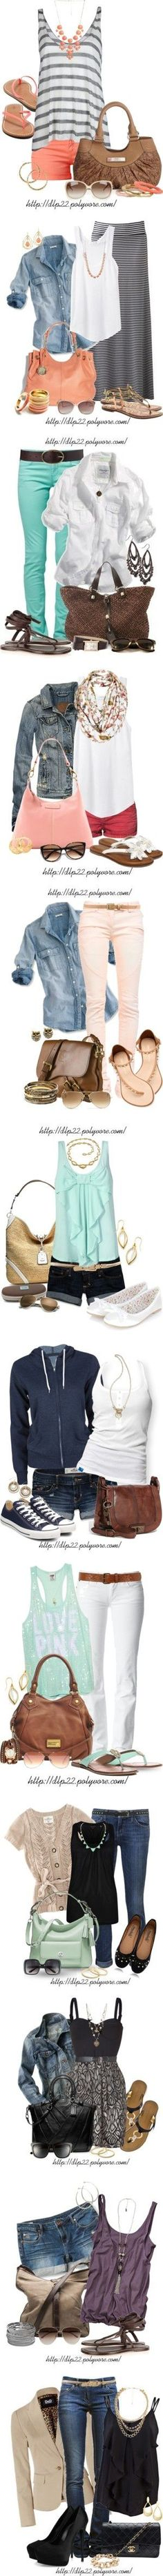 Lots of cute outfit ideas! Can these just appear in my closet now please!! Thanks!